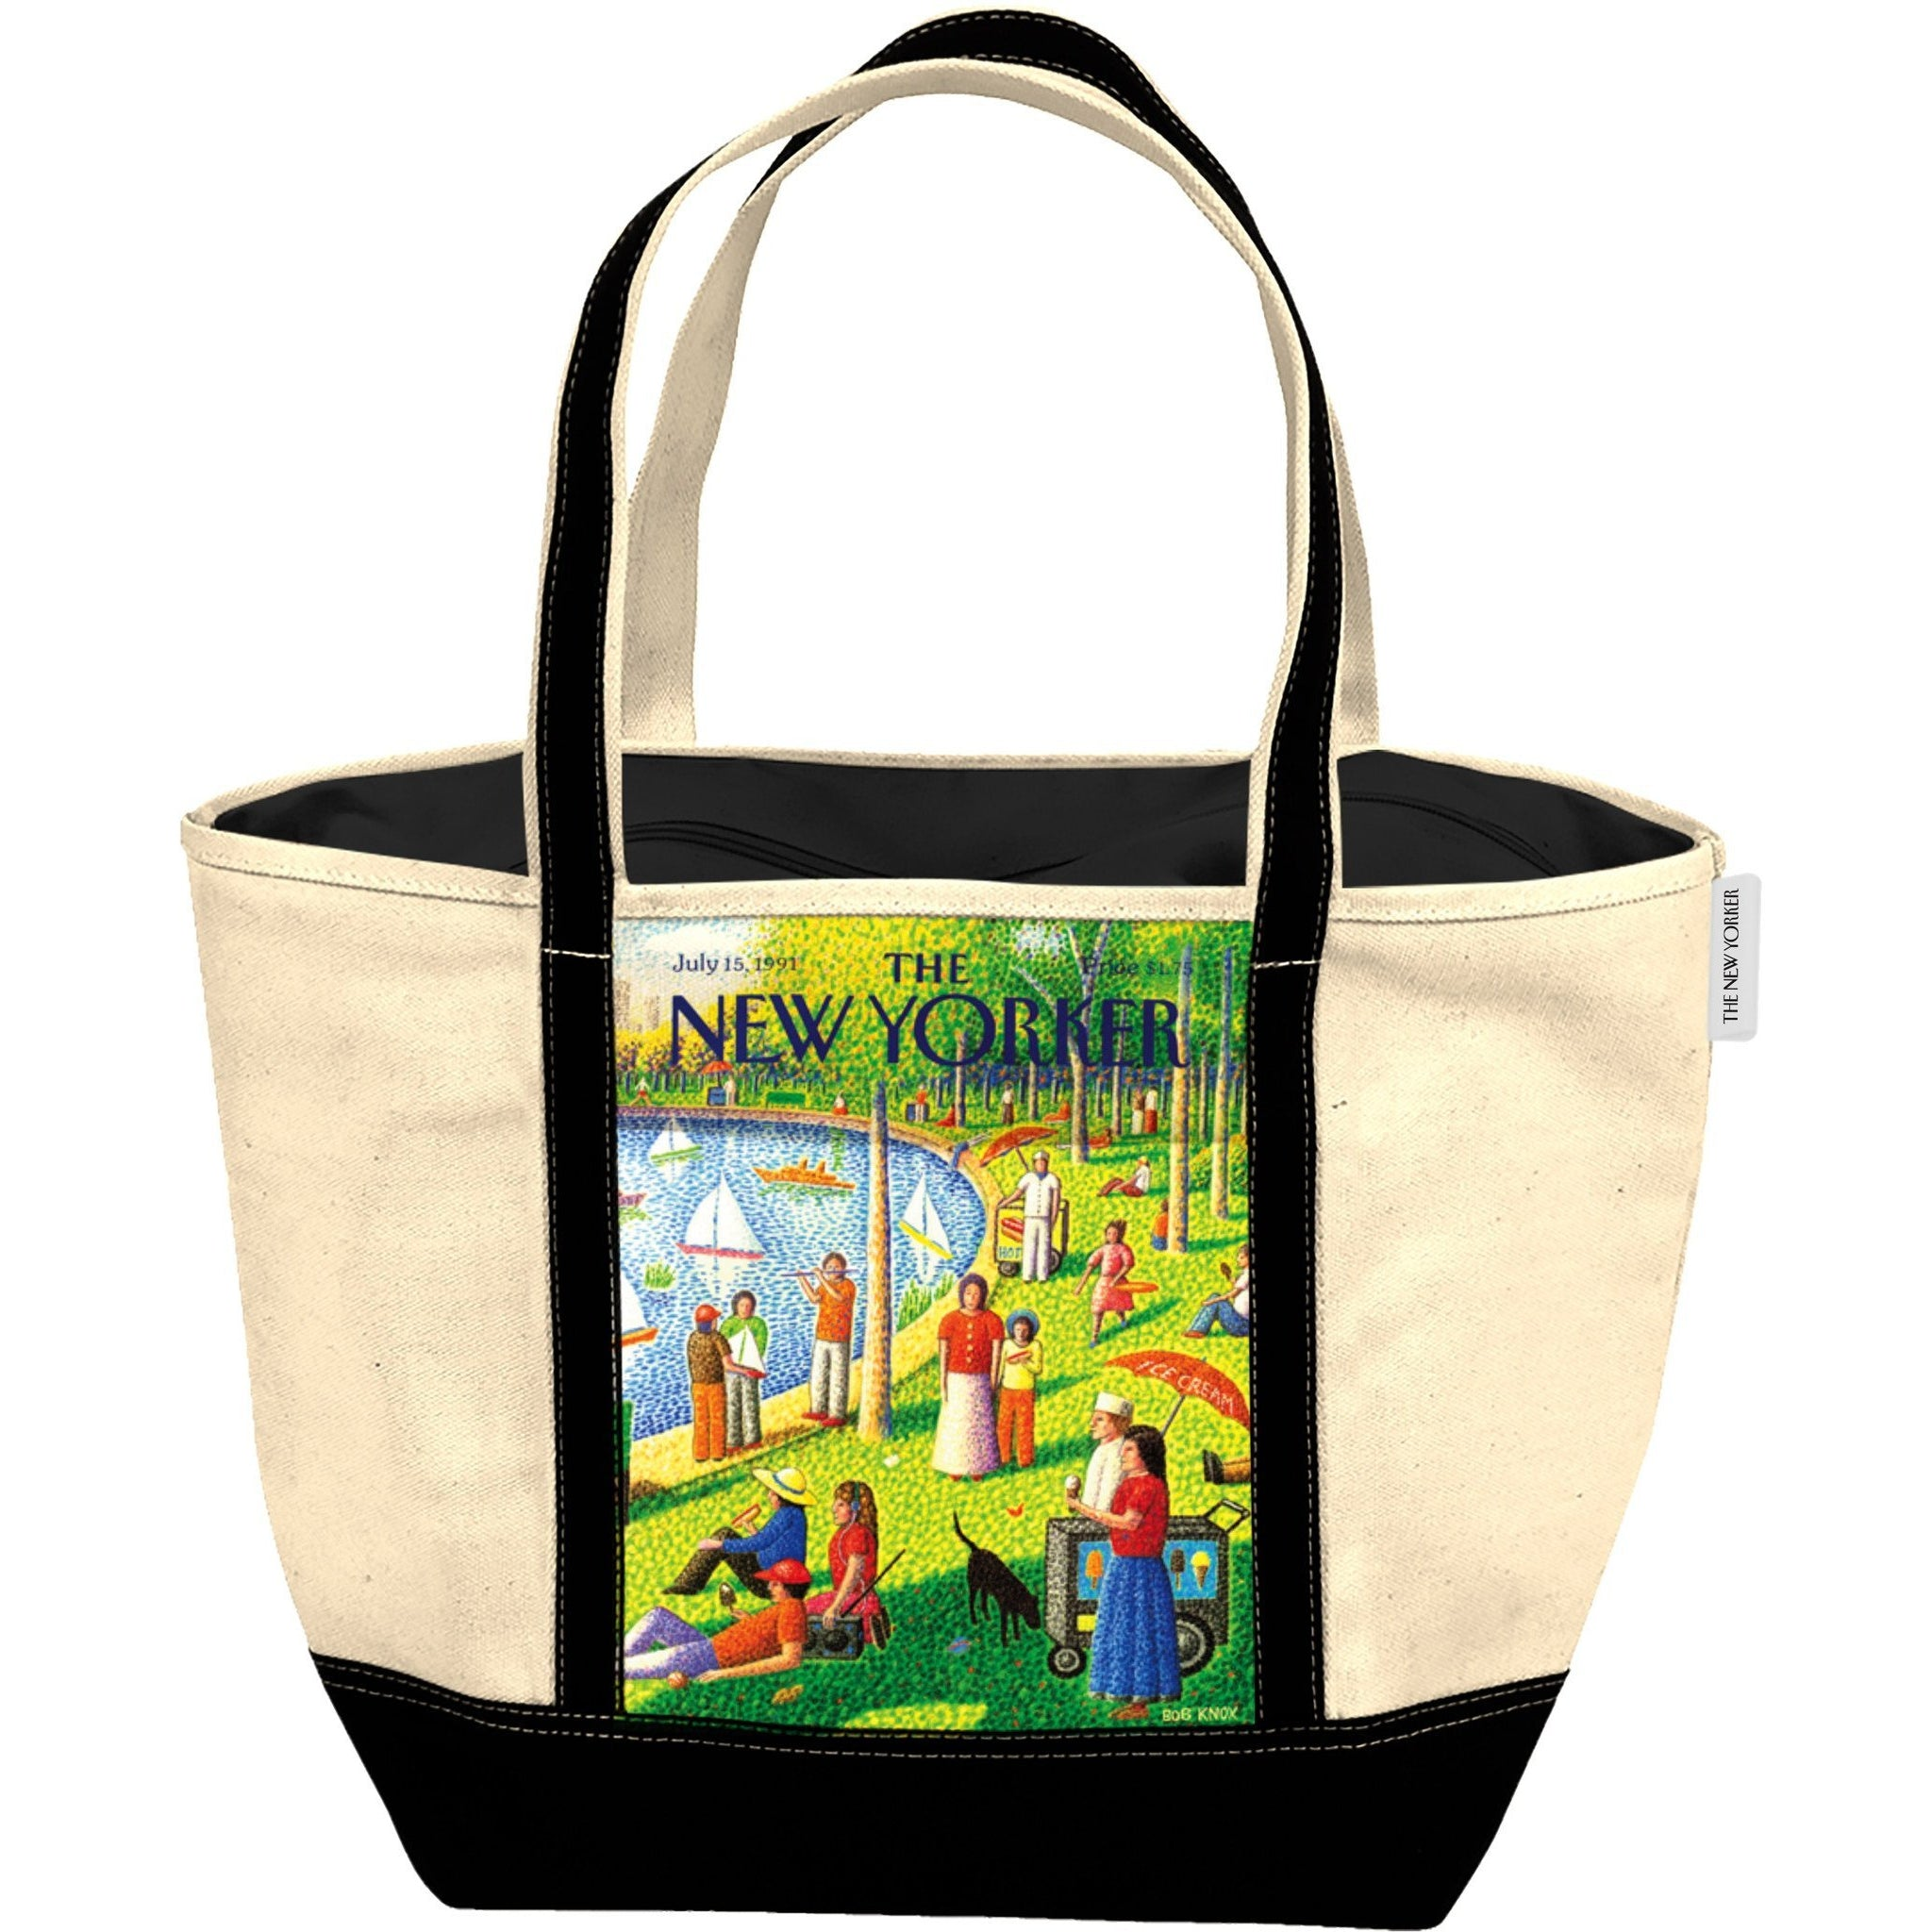 The New Yorker Sunday Afternoon in Central Park Tote Bag